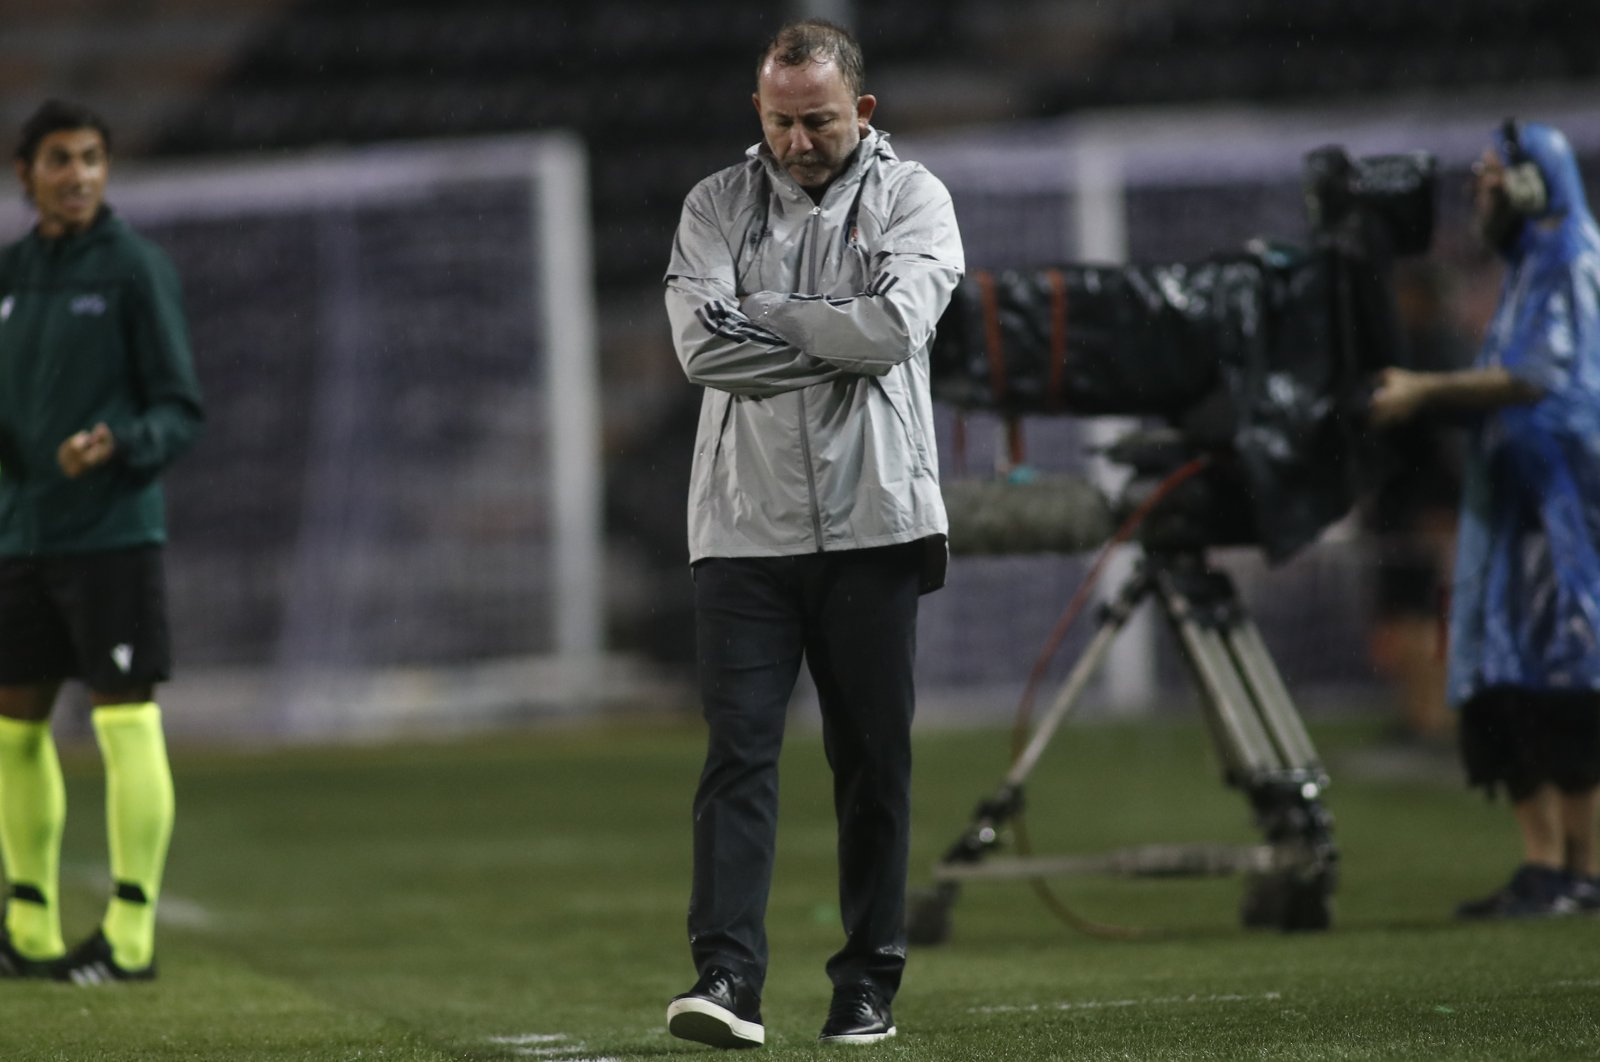 Sergen Yalçın reacts during the match against PAOK, in Thessaloniki, Greece, Aug. 25, 2020. (EPA Photo)